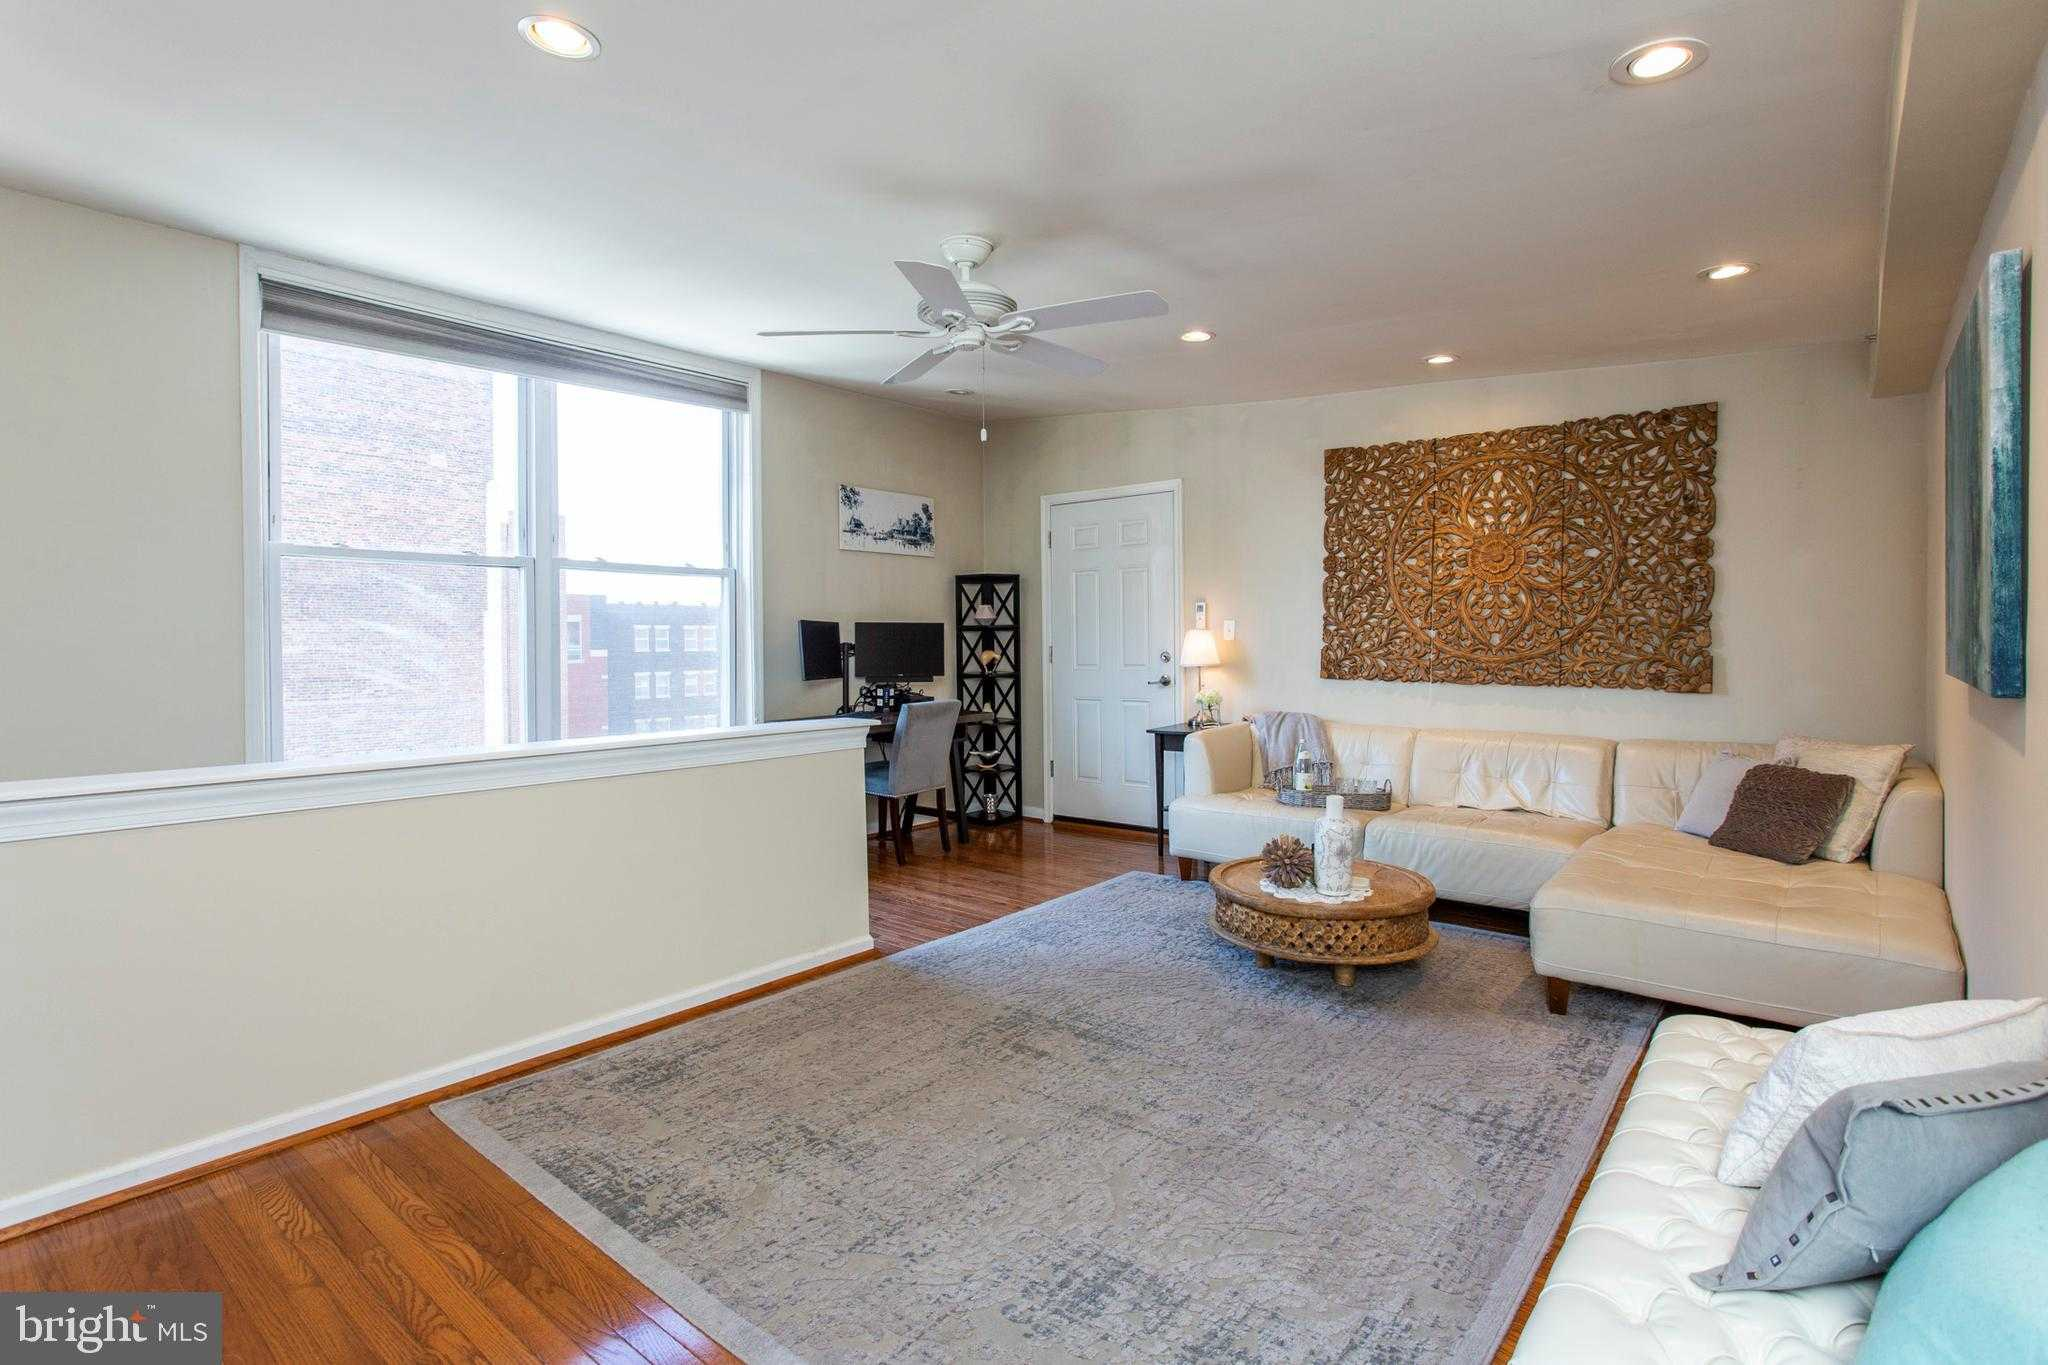 $300,000 - 1Br/1Ba -  for Sale in Old City, Philadelphia